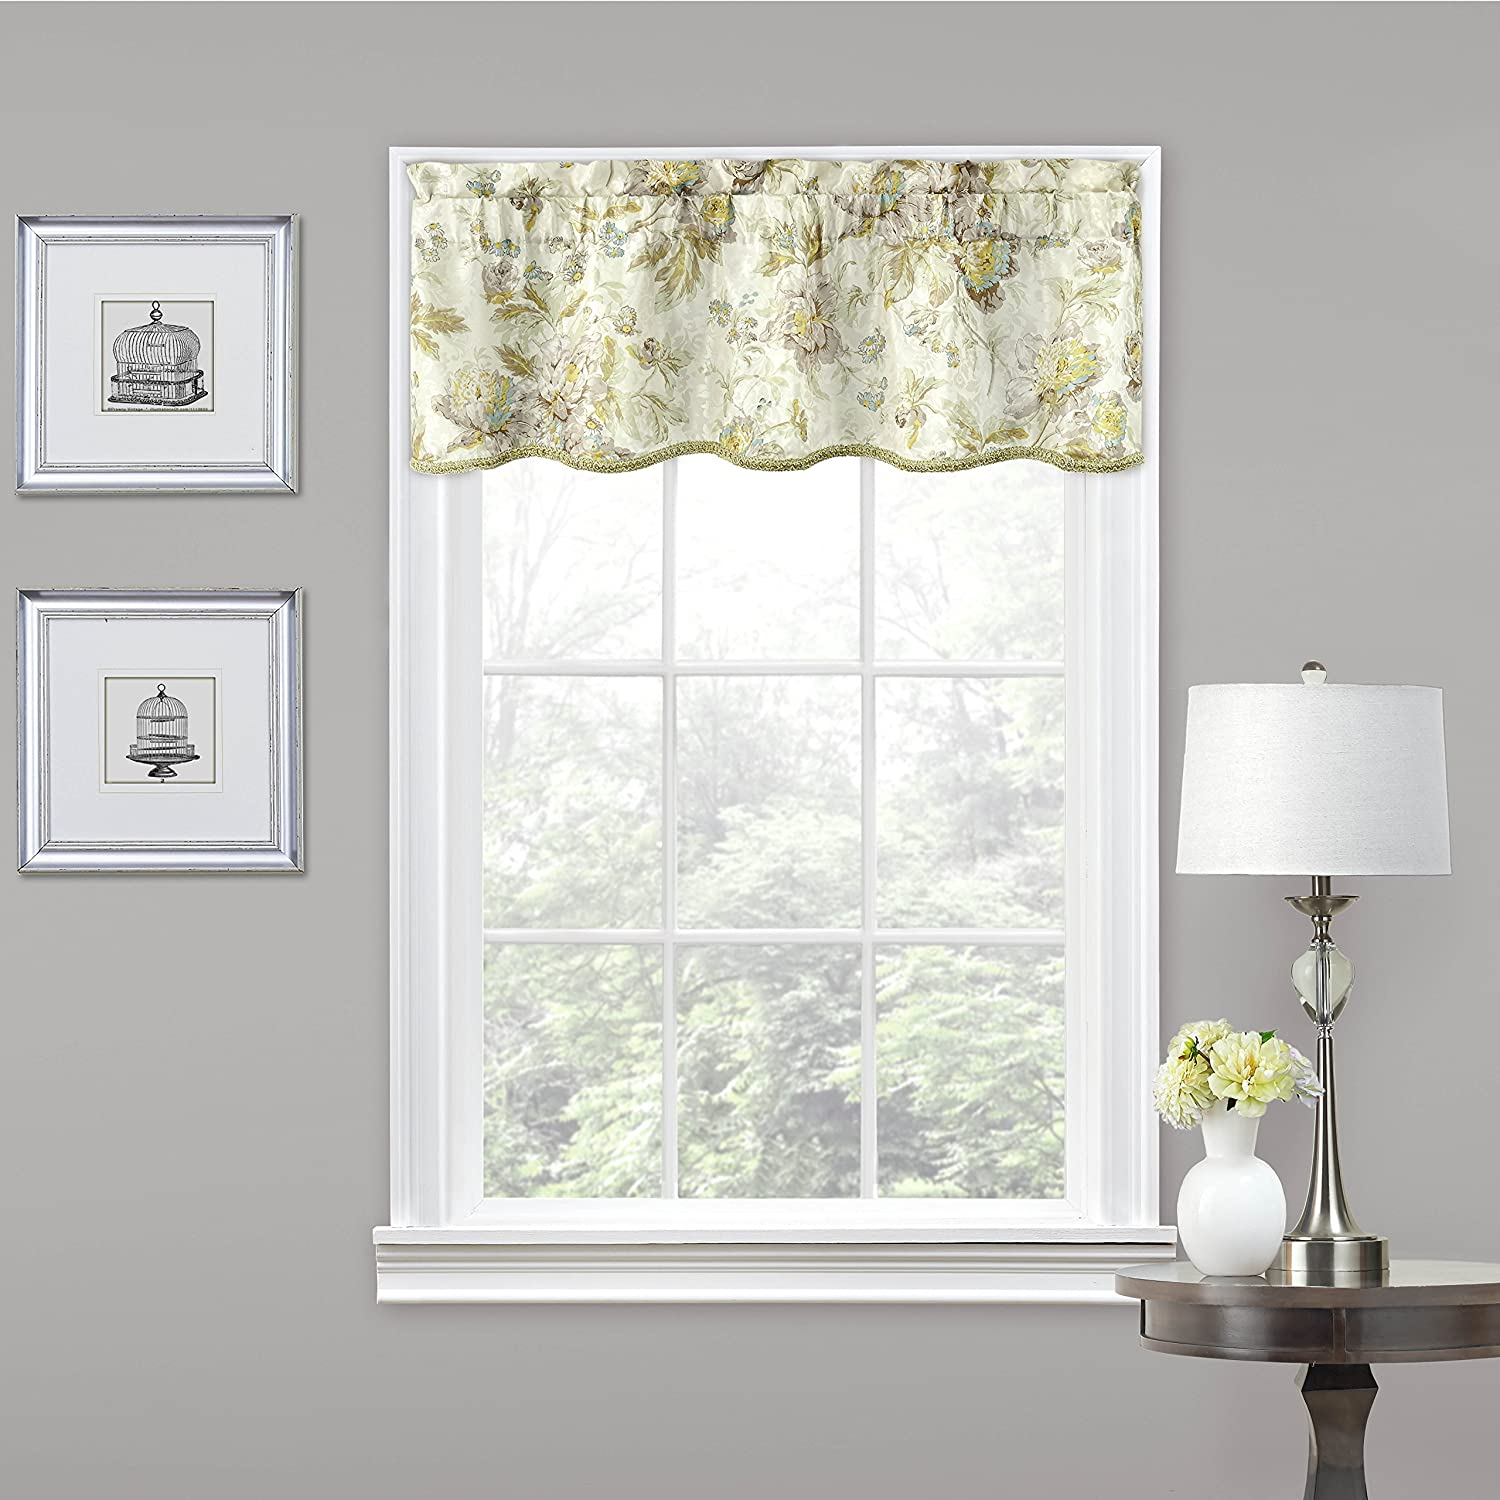 addition drapery also waverly your for curtain table with valance lamp to ideas decorating interior valances fresh design and side panels molding drapes great window